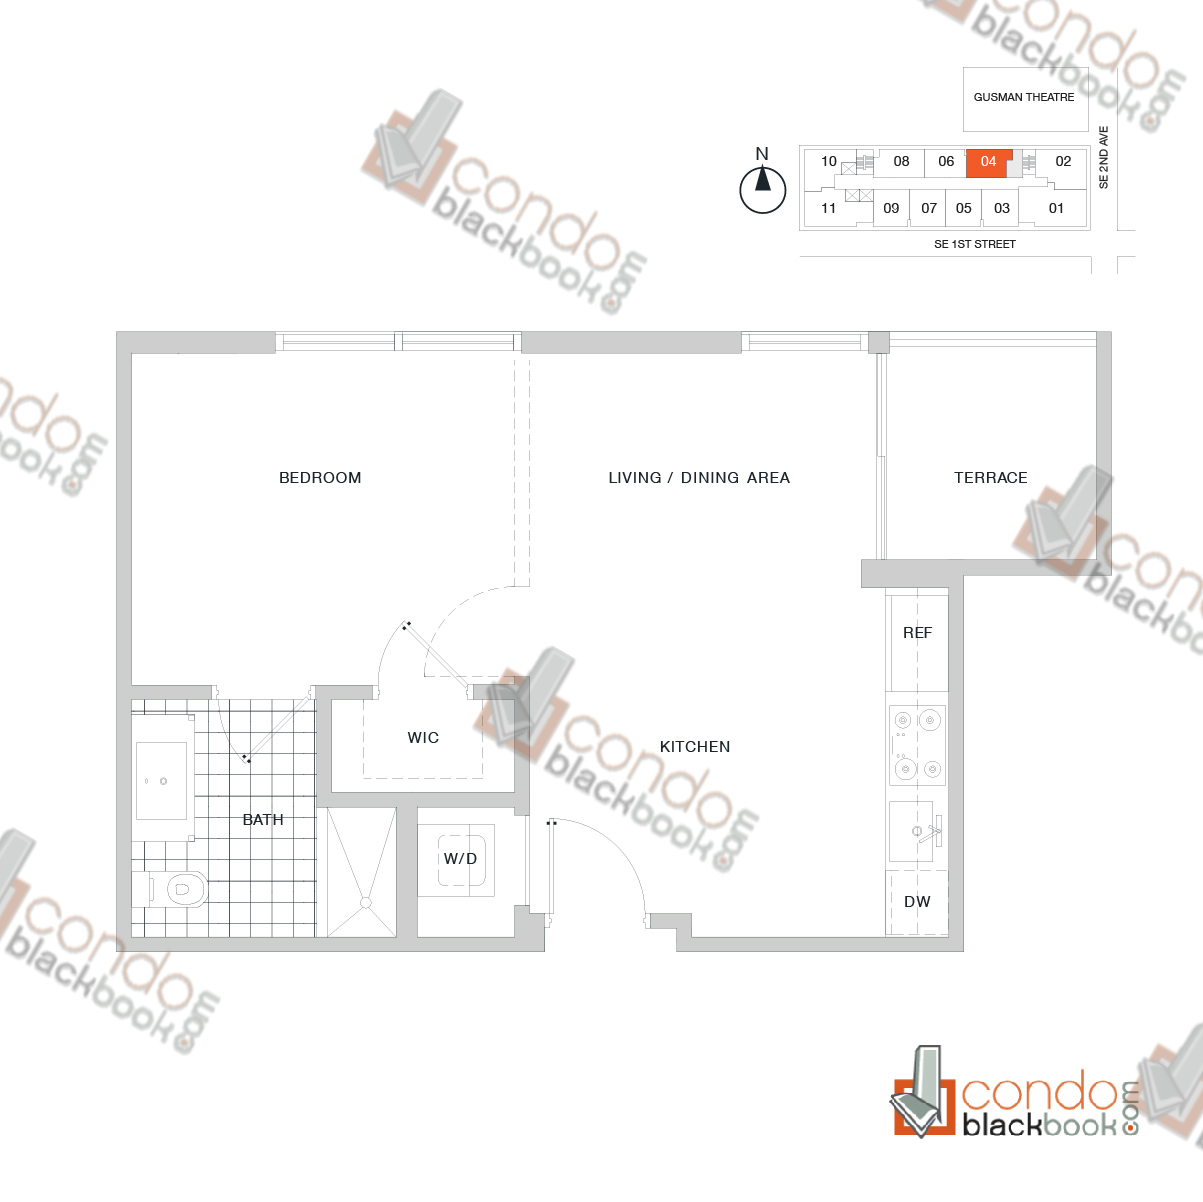 Floor plan for Centro Downtown Miami Miami, model H, line 04, 1/1 bedrooms, 500 sq ft